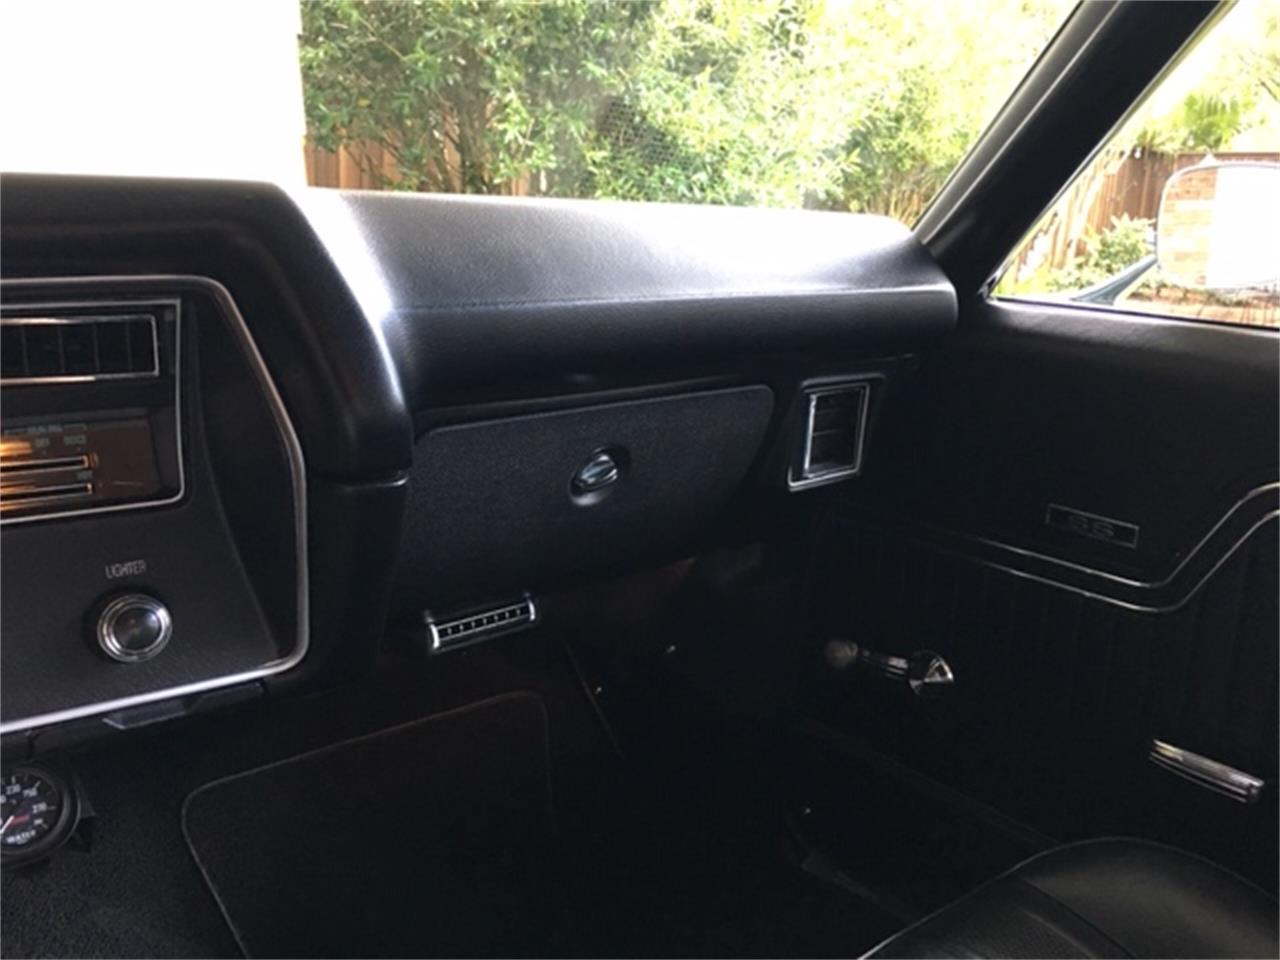 1970 Chevrolet Chevelle SS for sale in Metairie, LA – photo 17